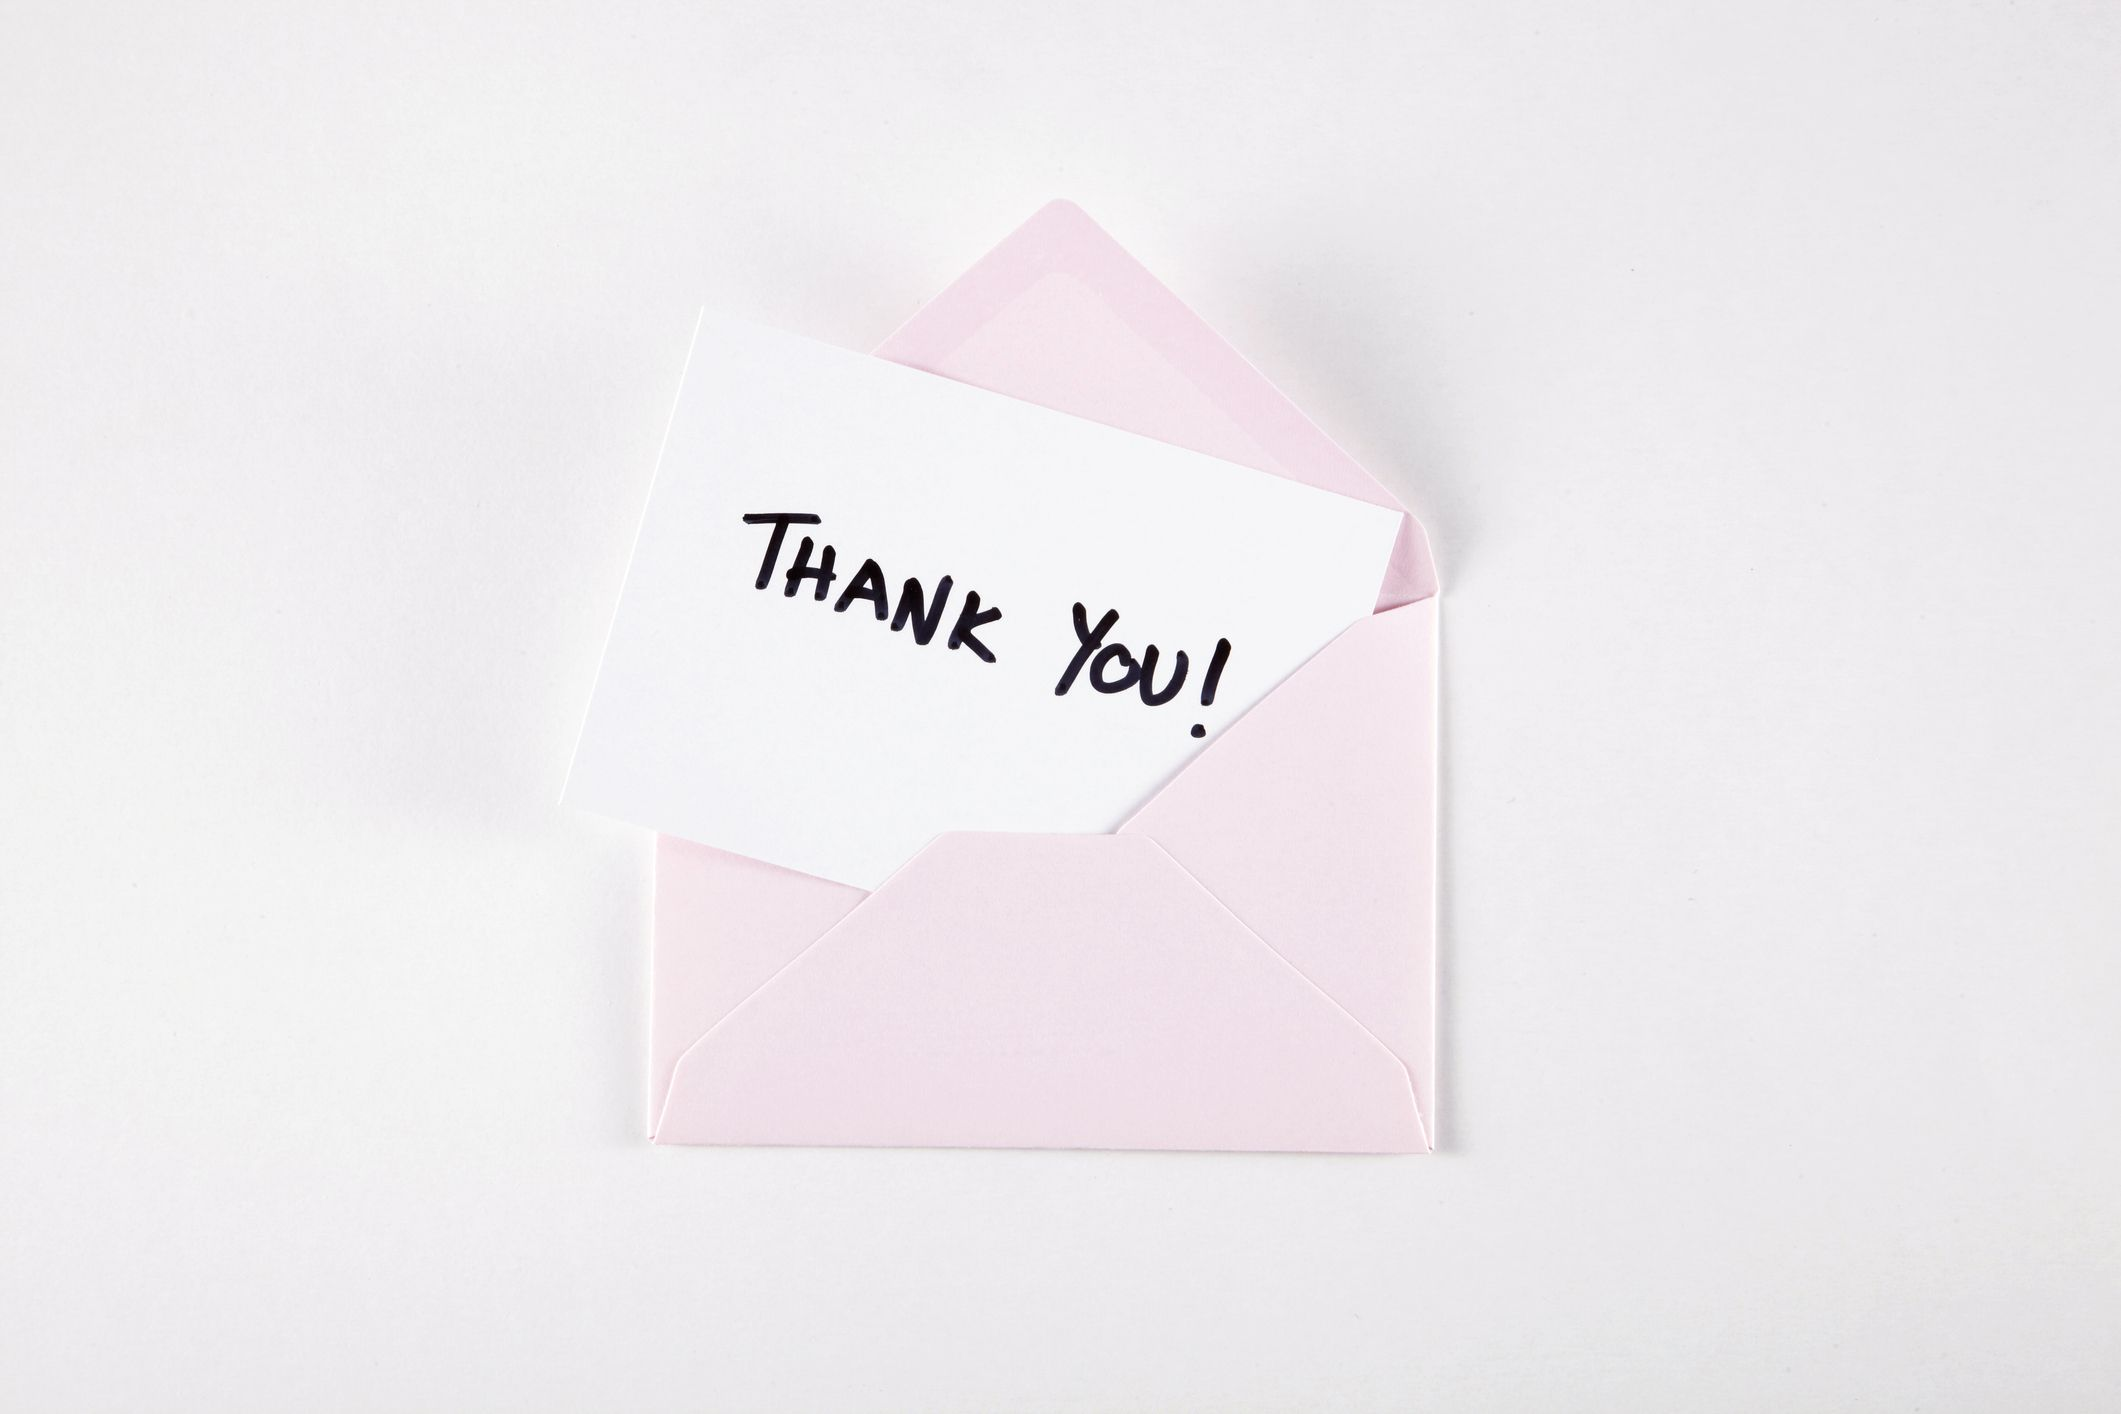 Sending A Thank You Letter After An Interview from hips.hearstapps.com